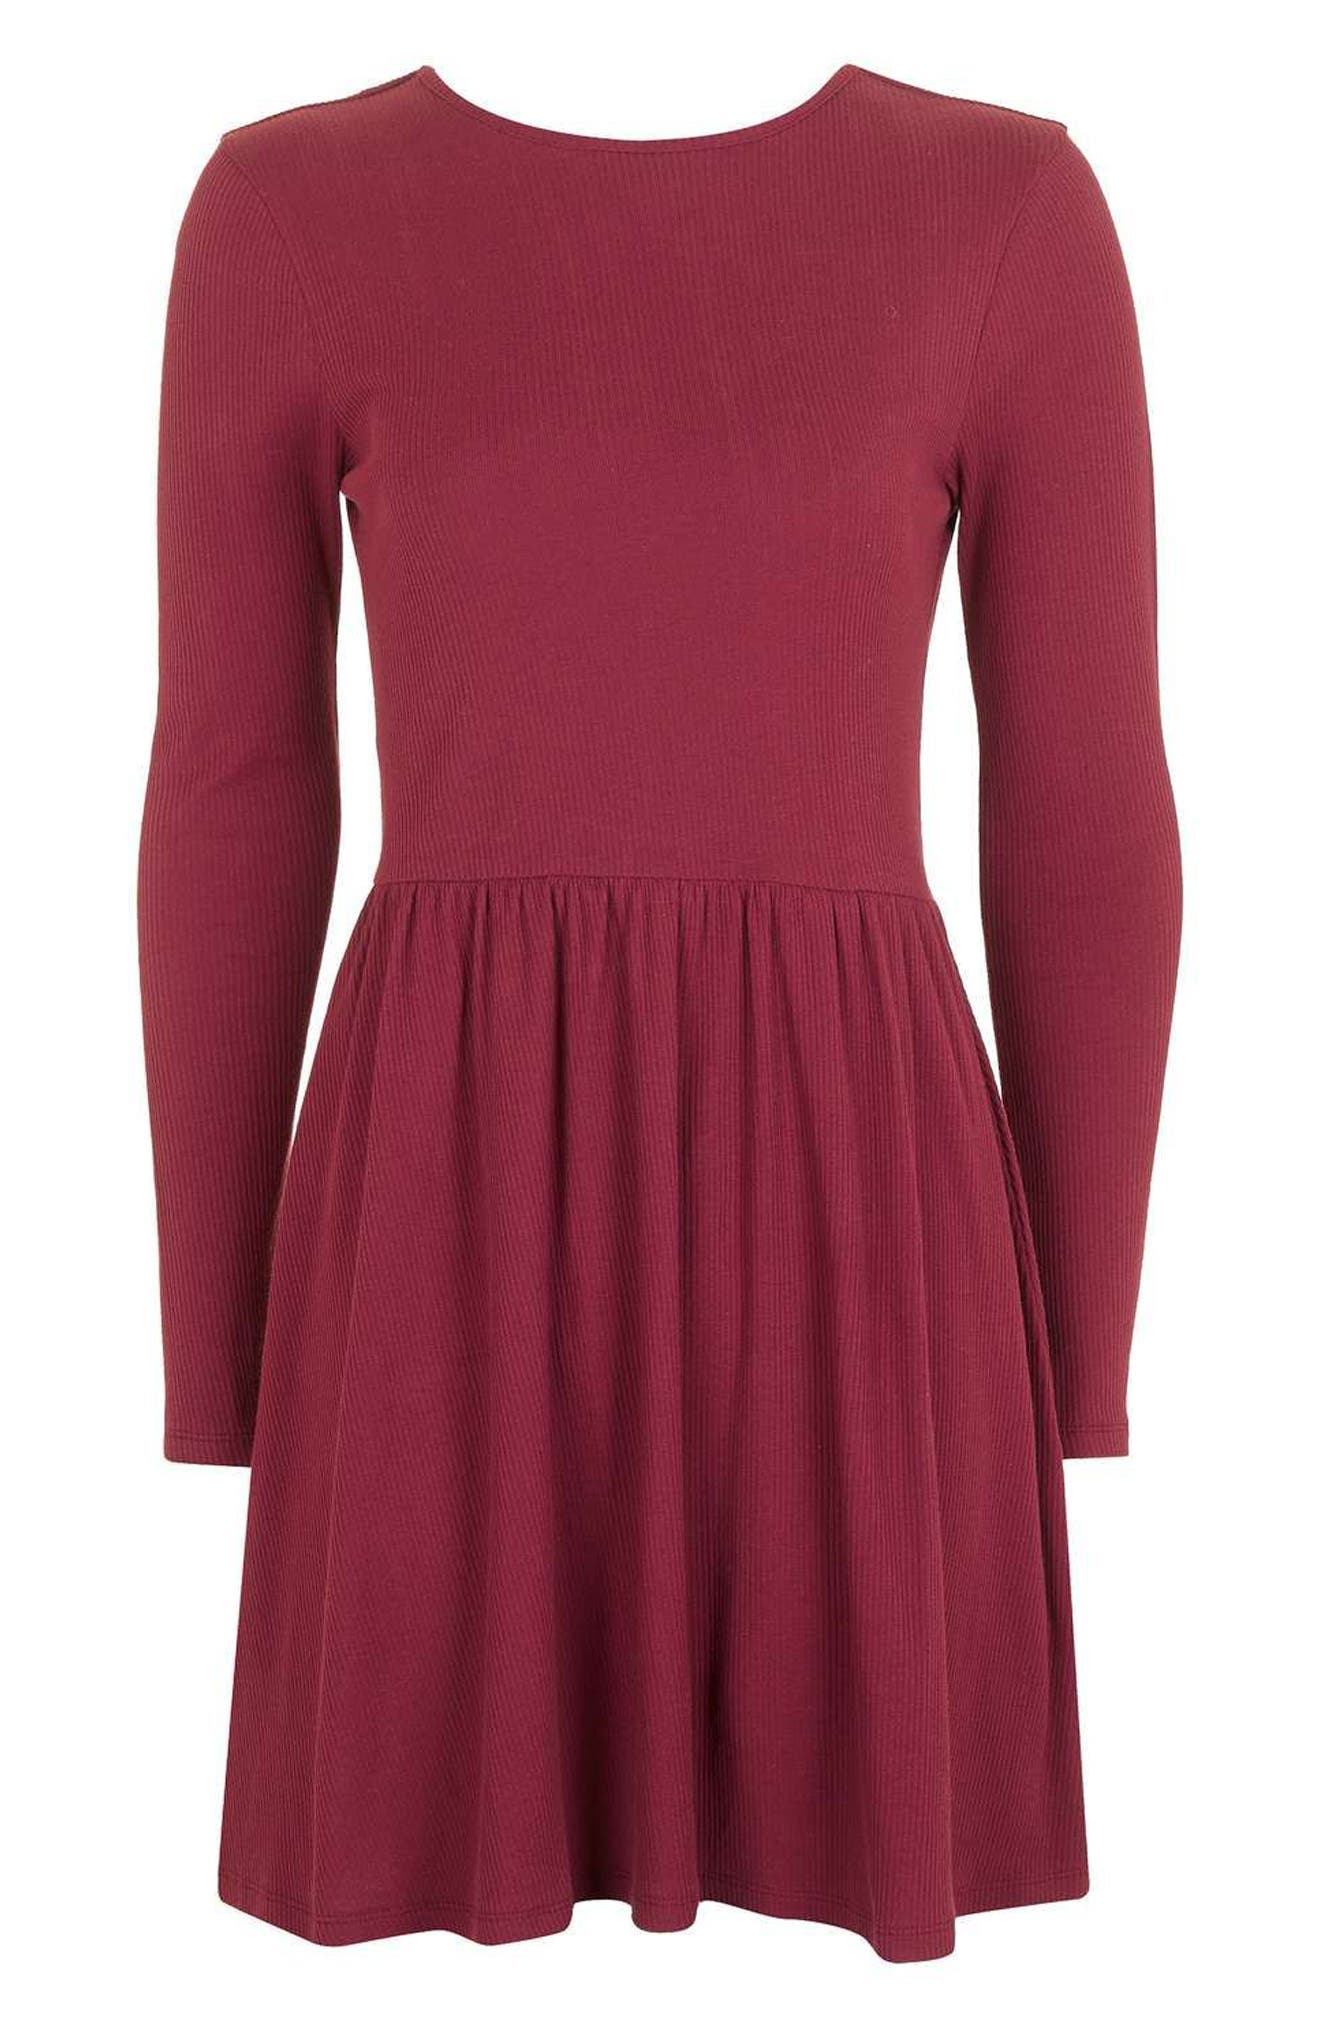 Alternate Image 4  - Topshop Tie Back Skater Dress